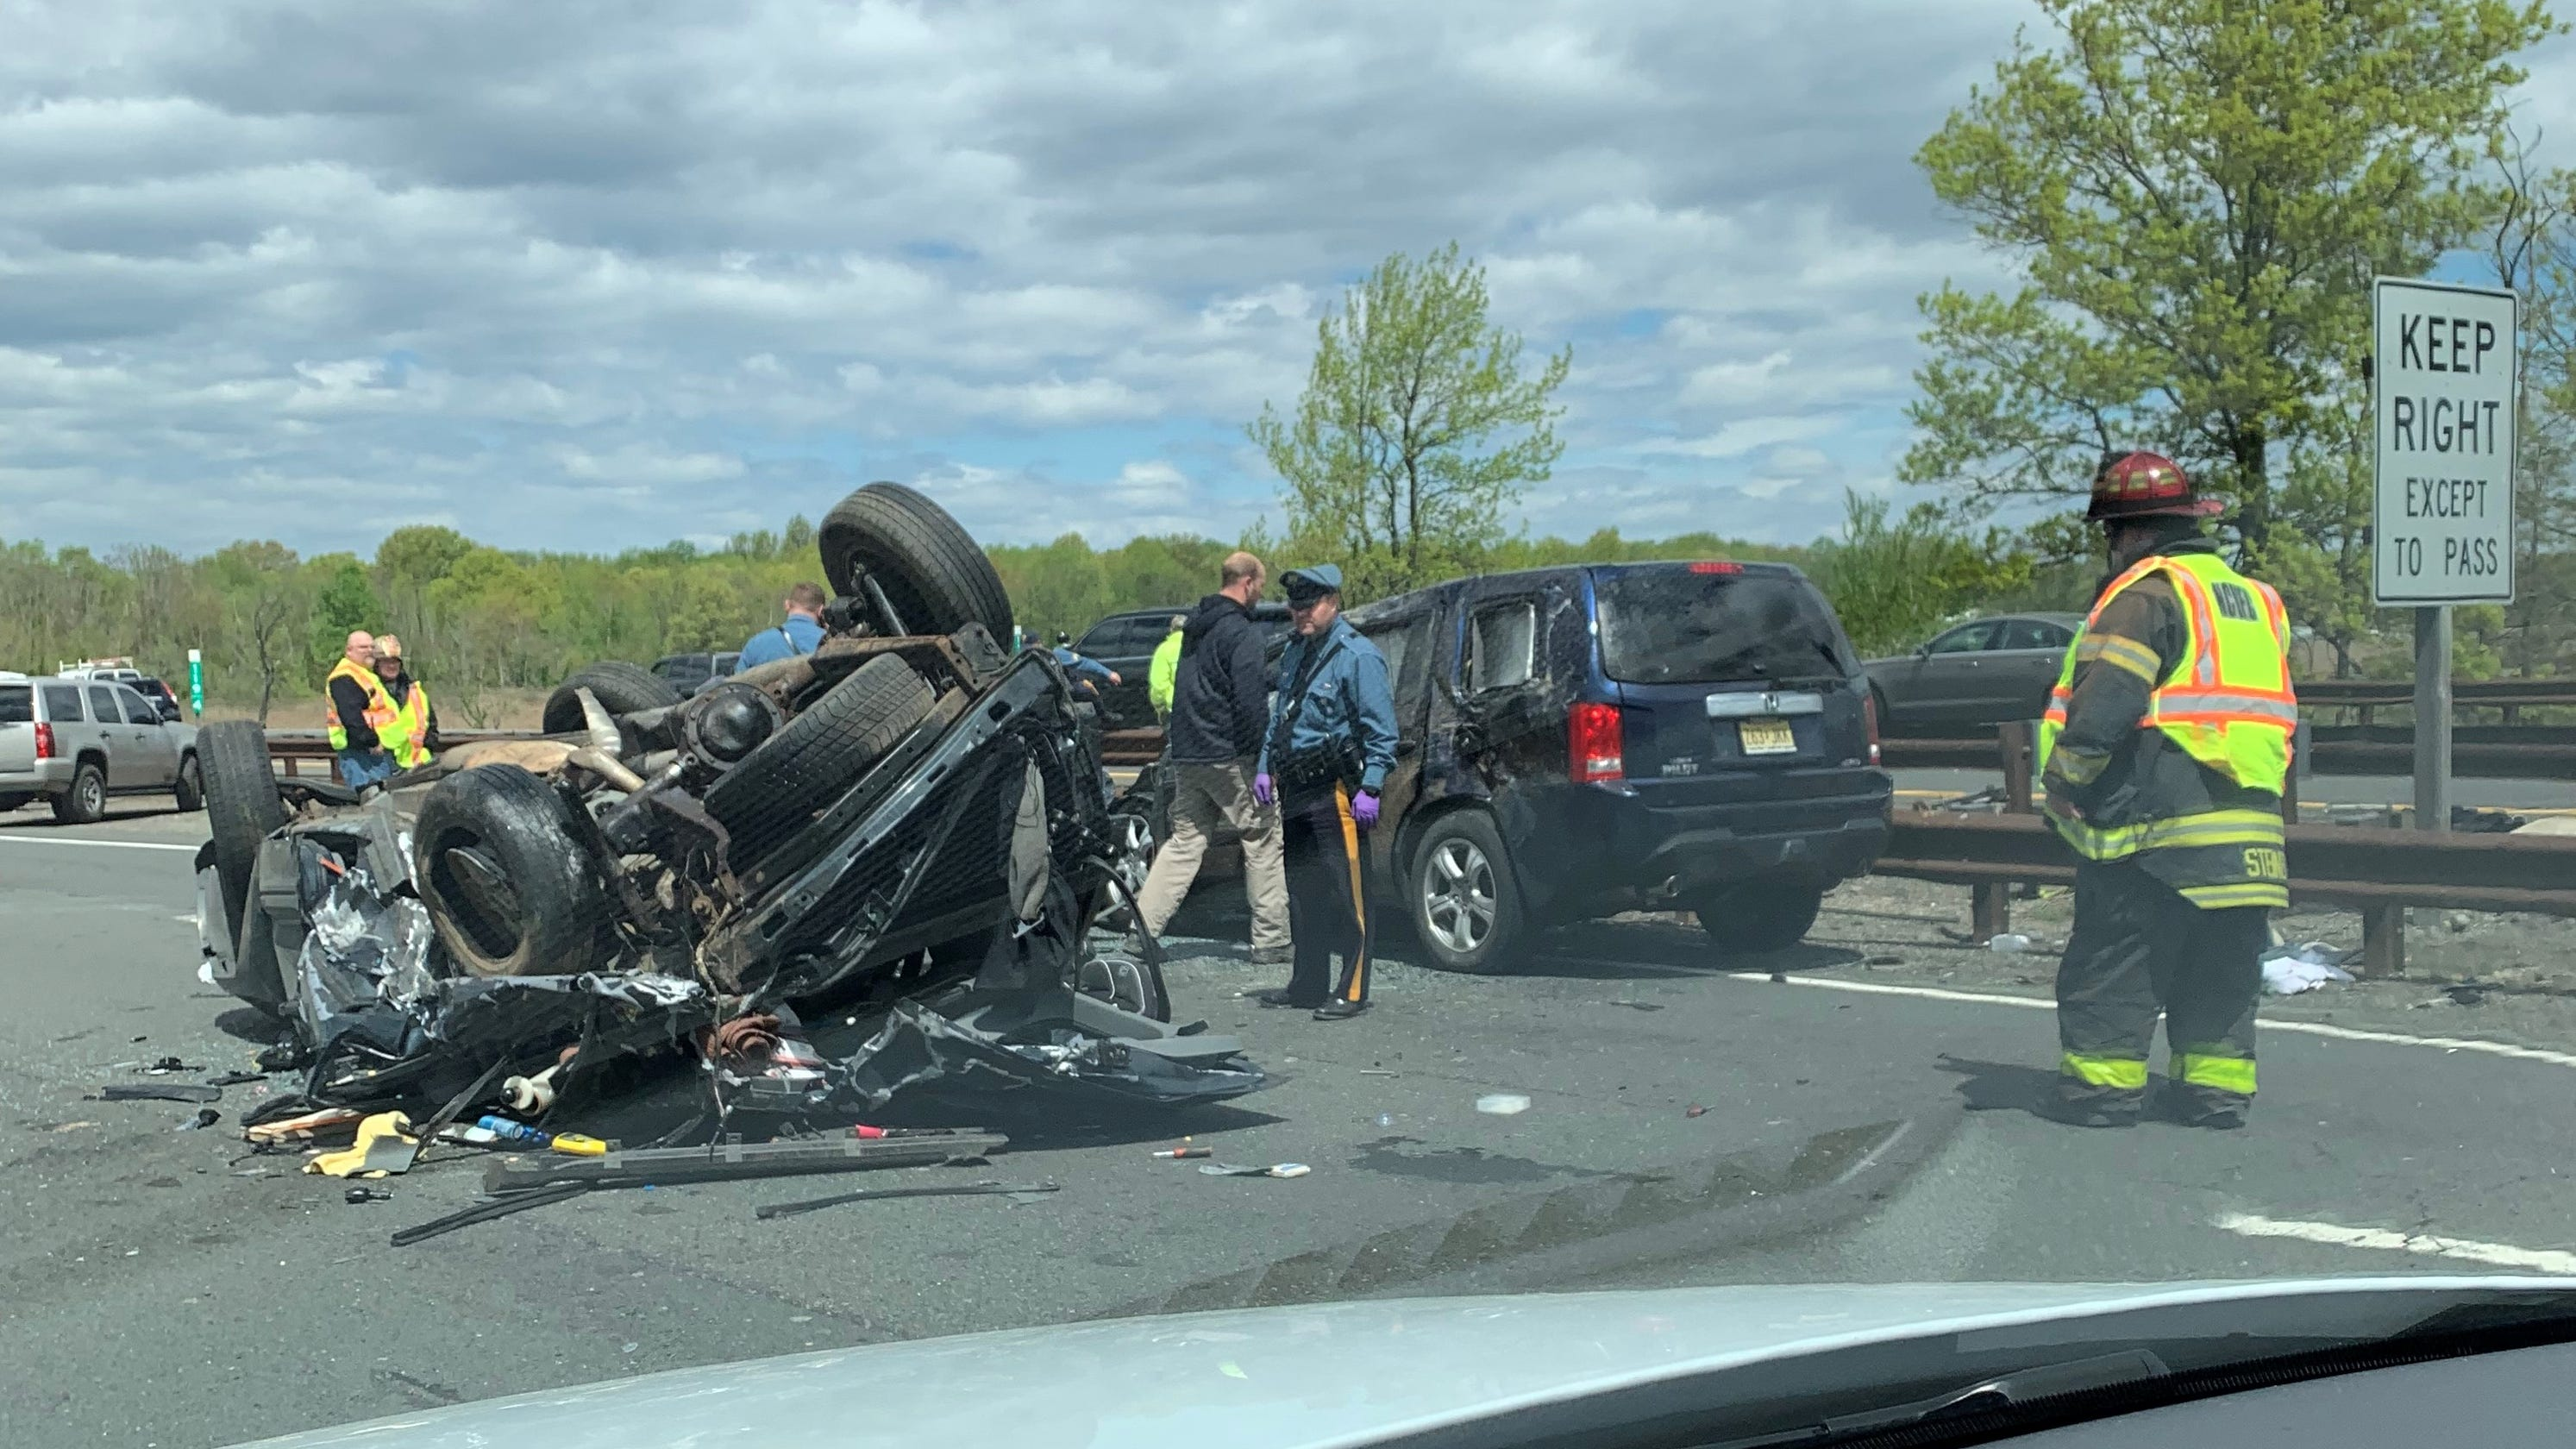 Parkway crash here 39 s what we know now - Accident on garden state parkway north today ...